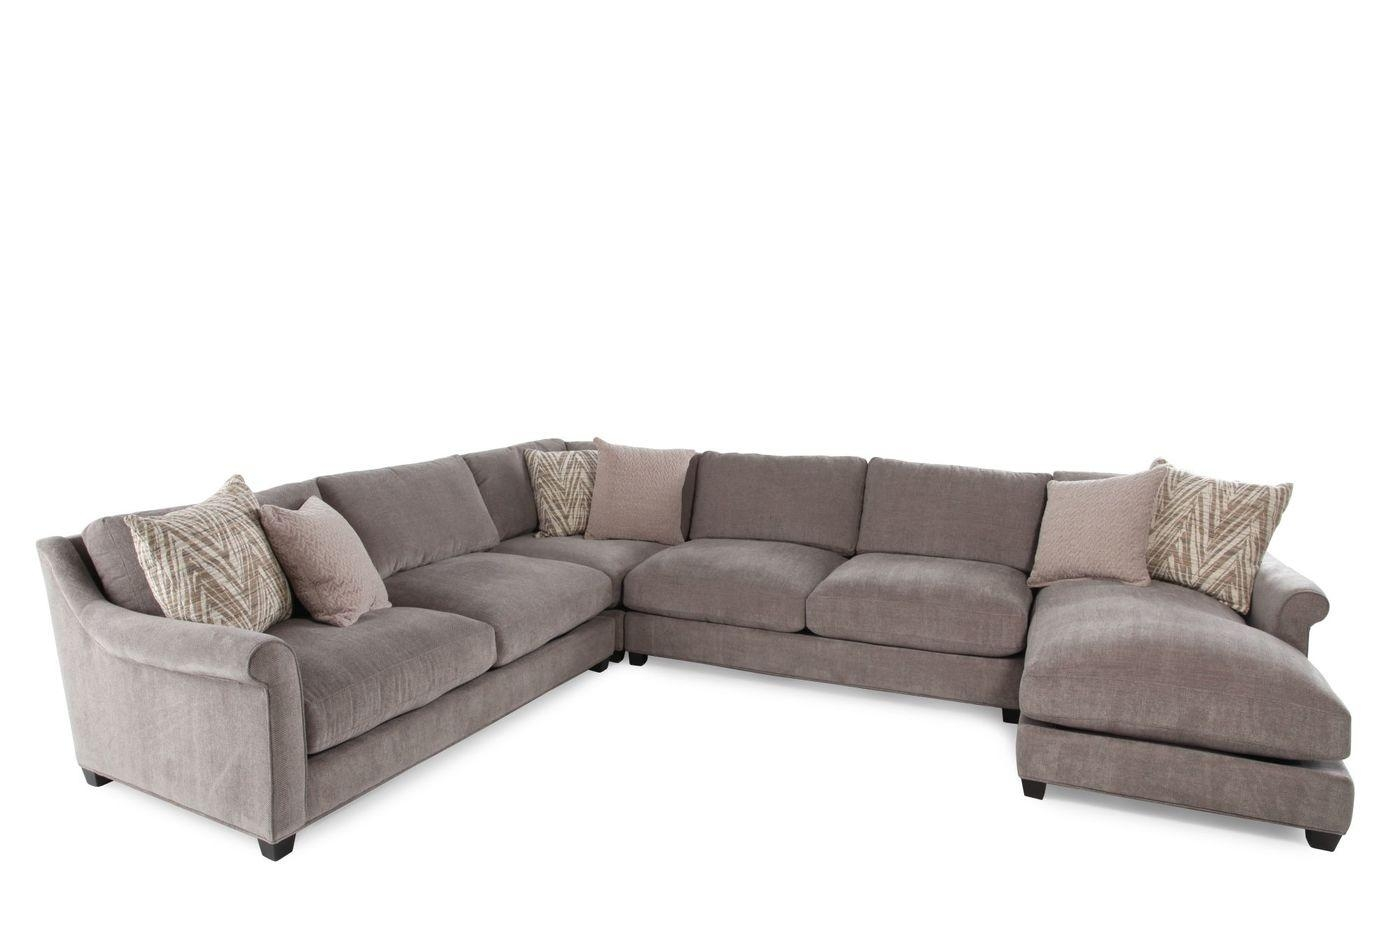 Featured Image of Jonathan Sofa